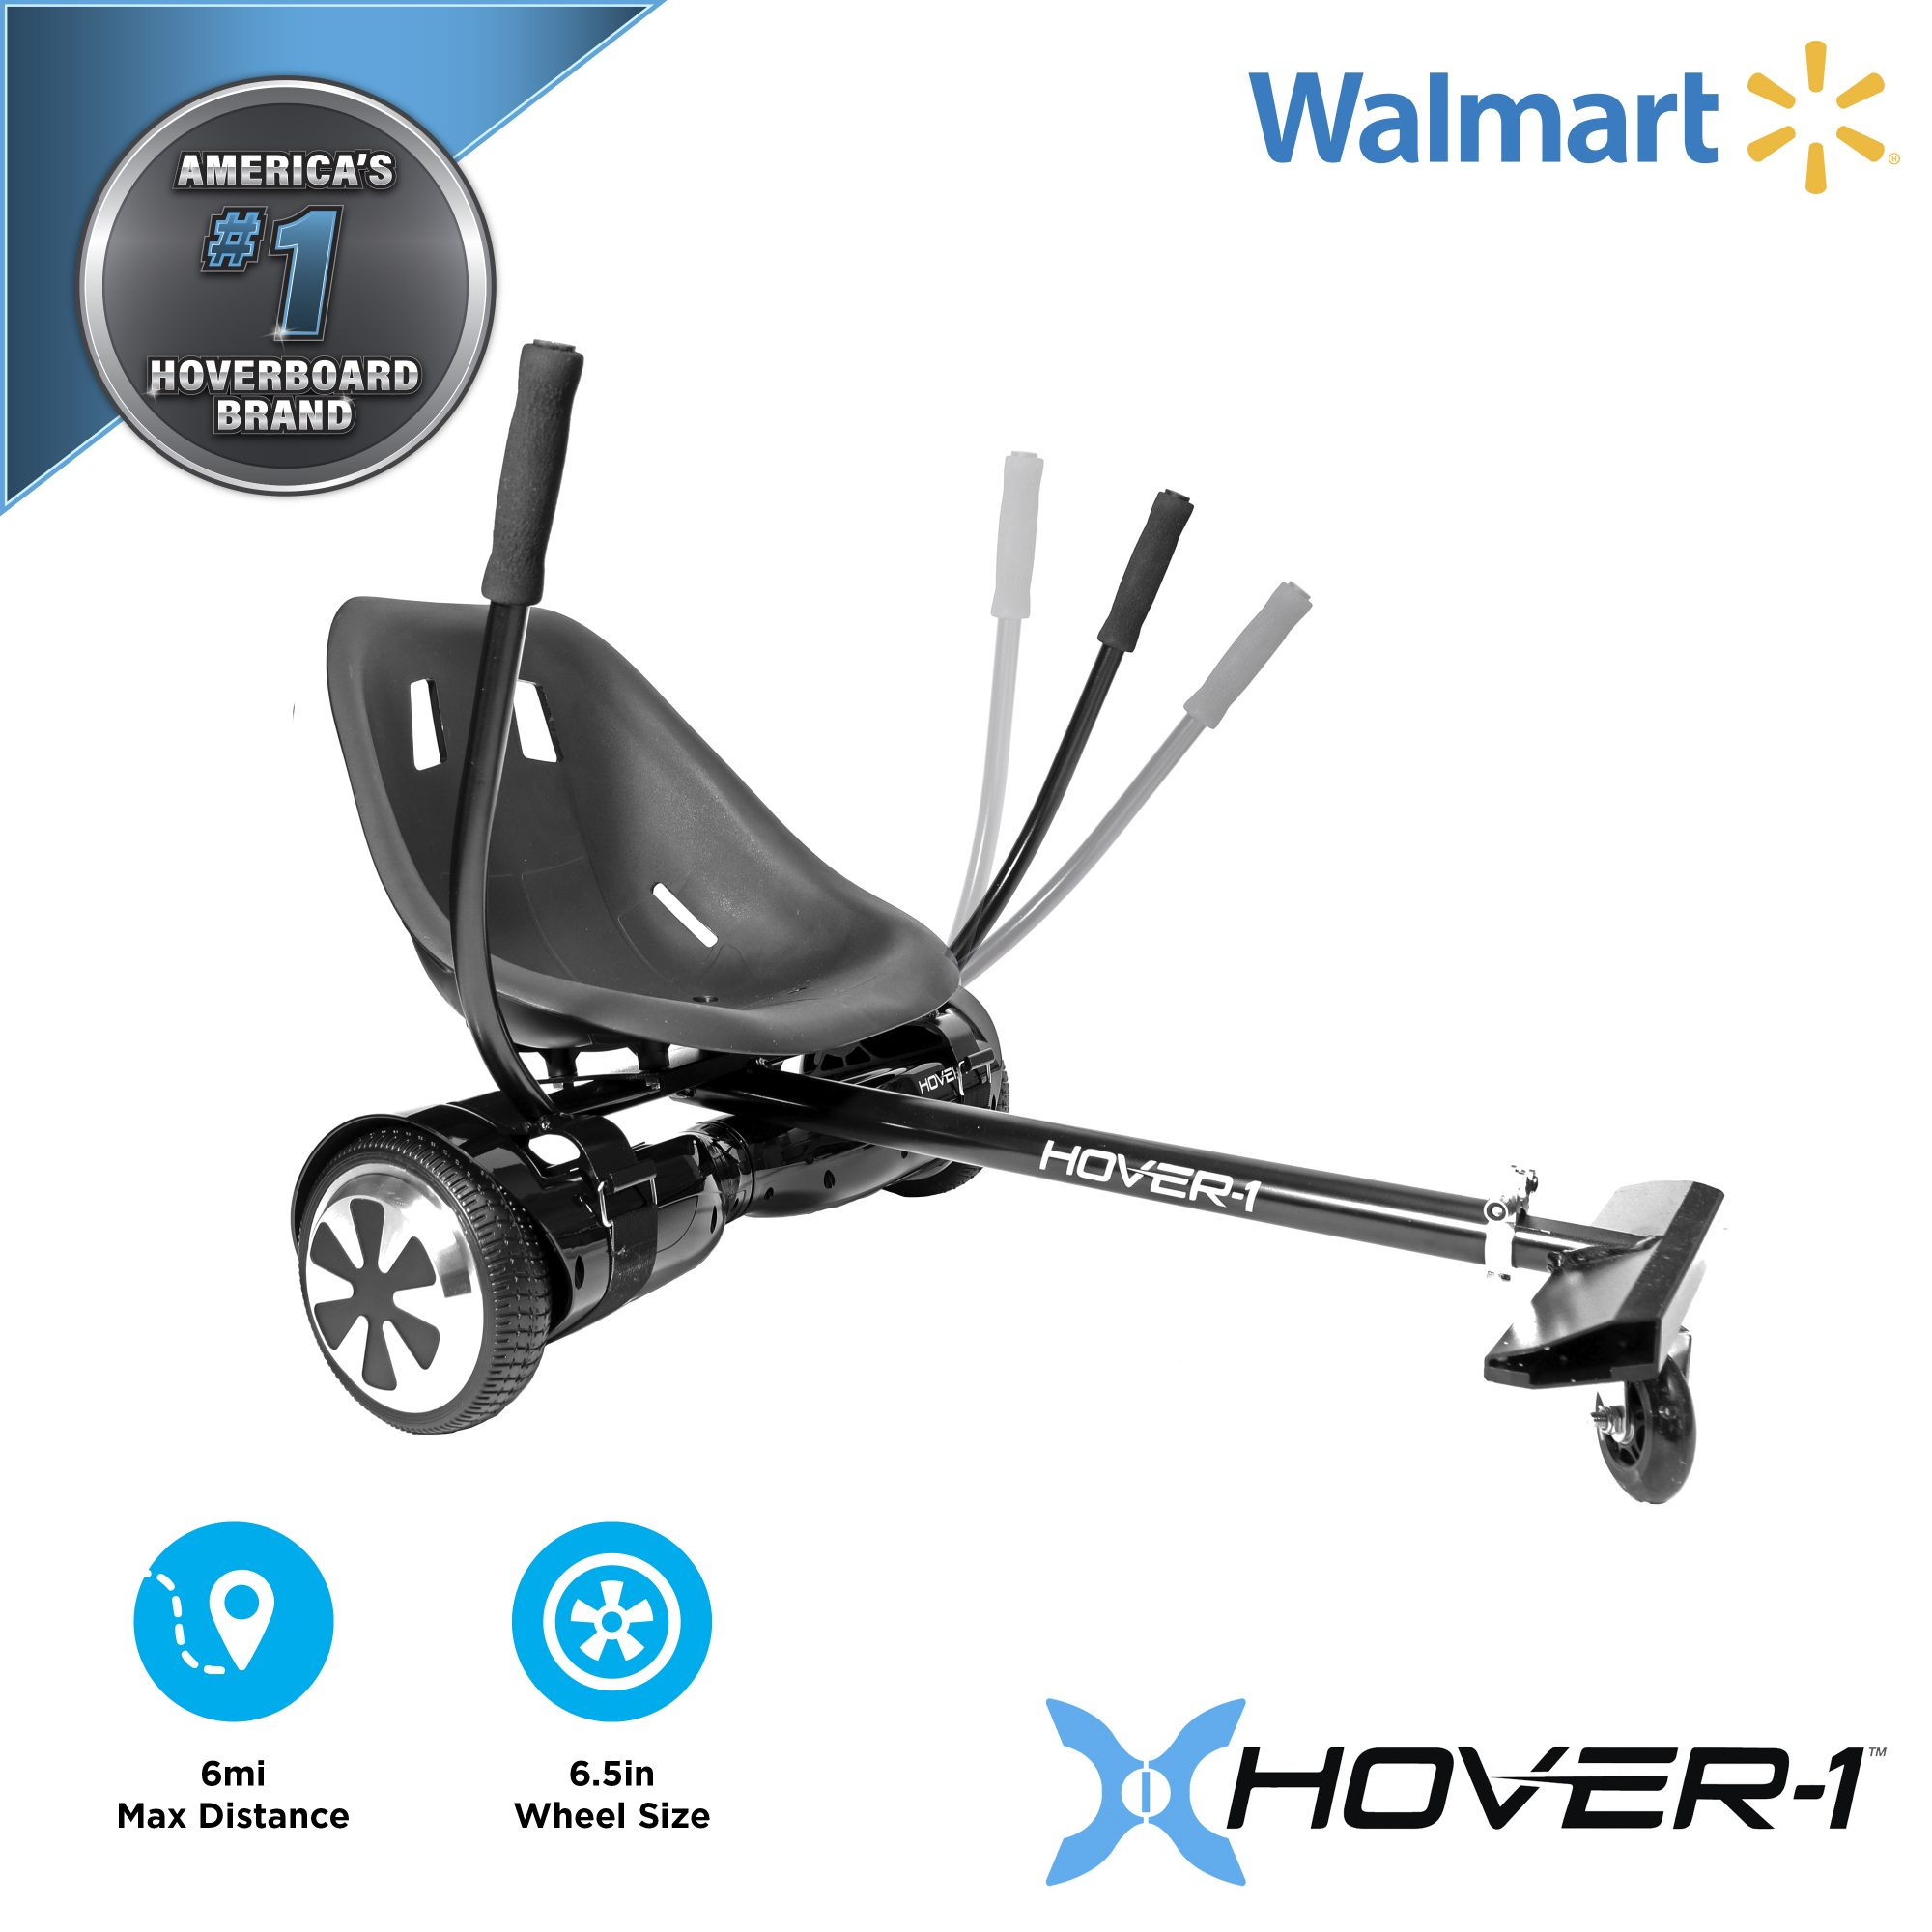 Walmart's Hot Toy List Is Here and OMG It's Not Even Labor Day hover1-walmart